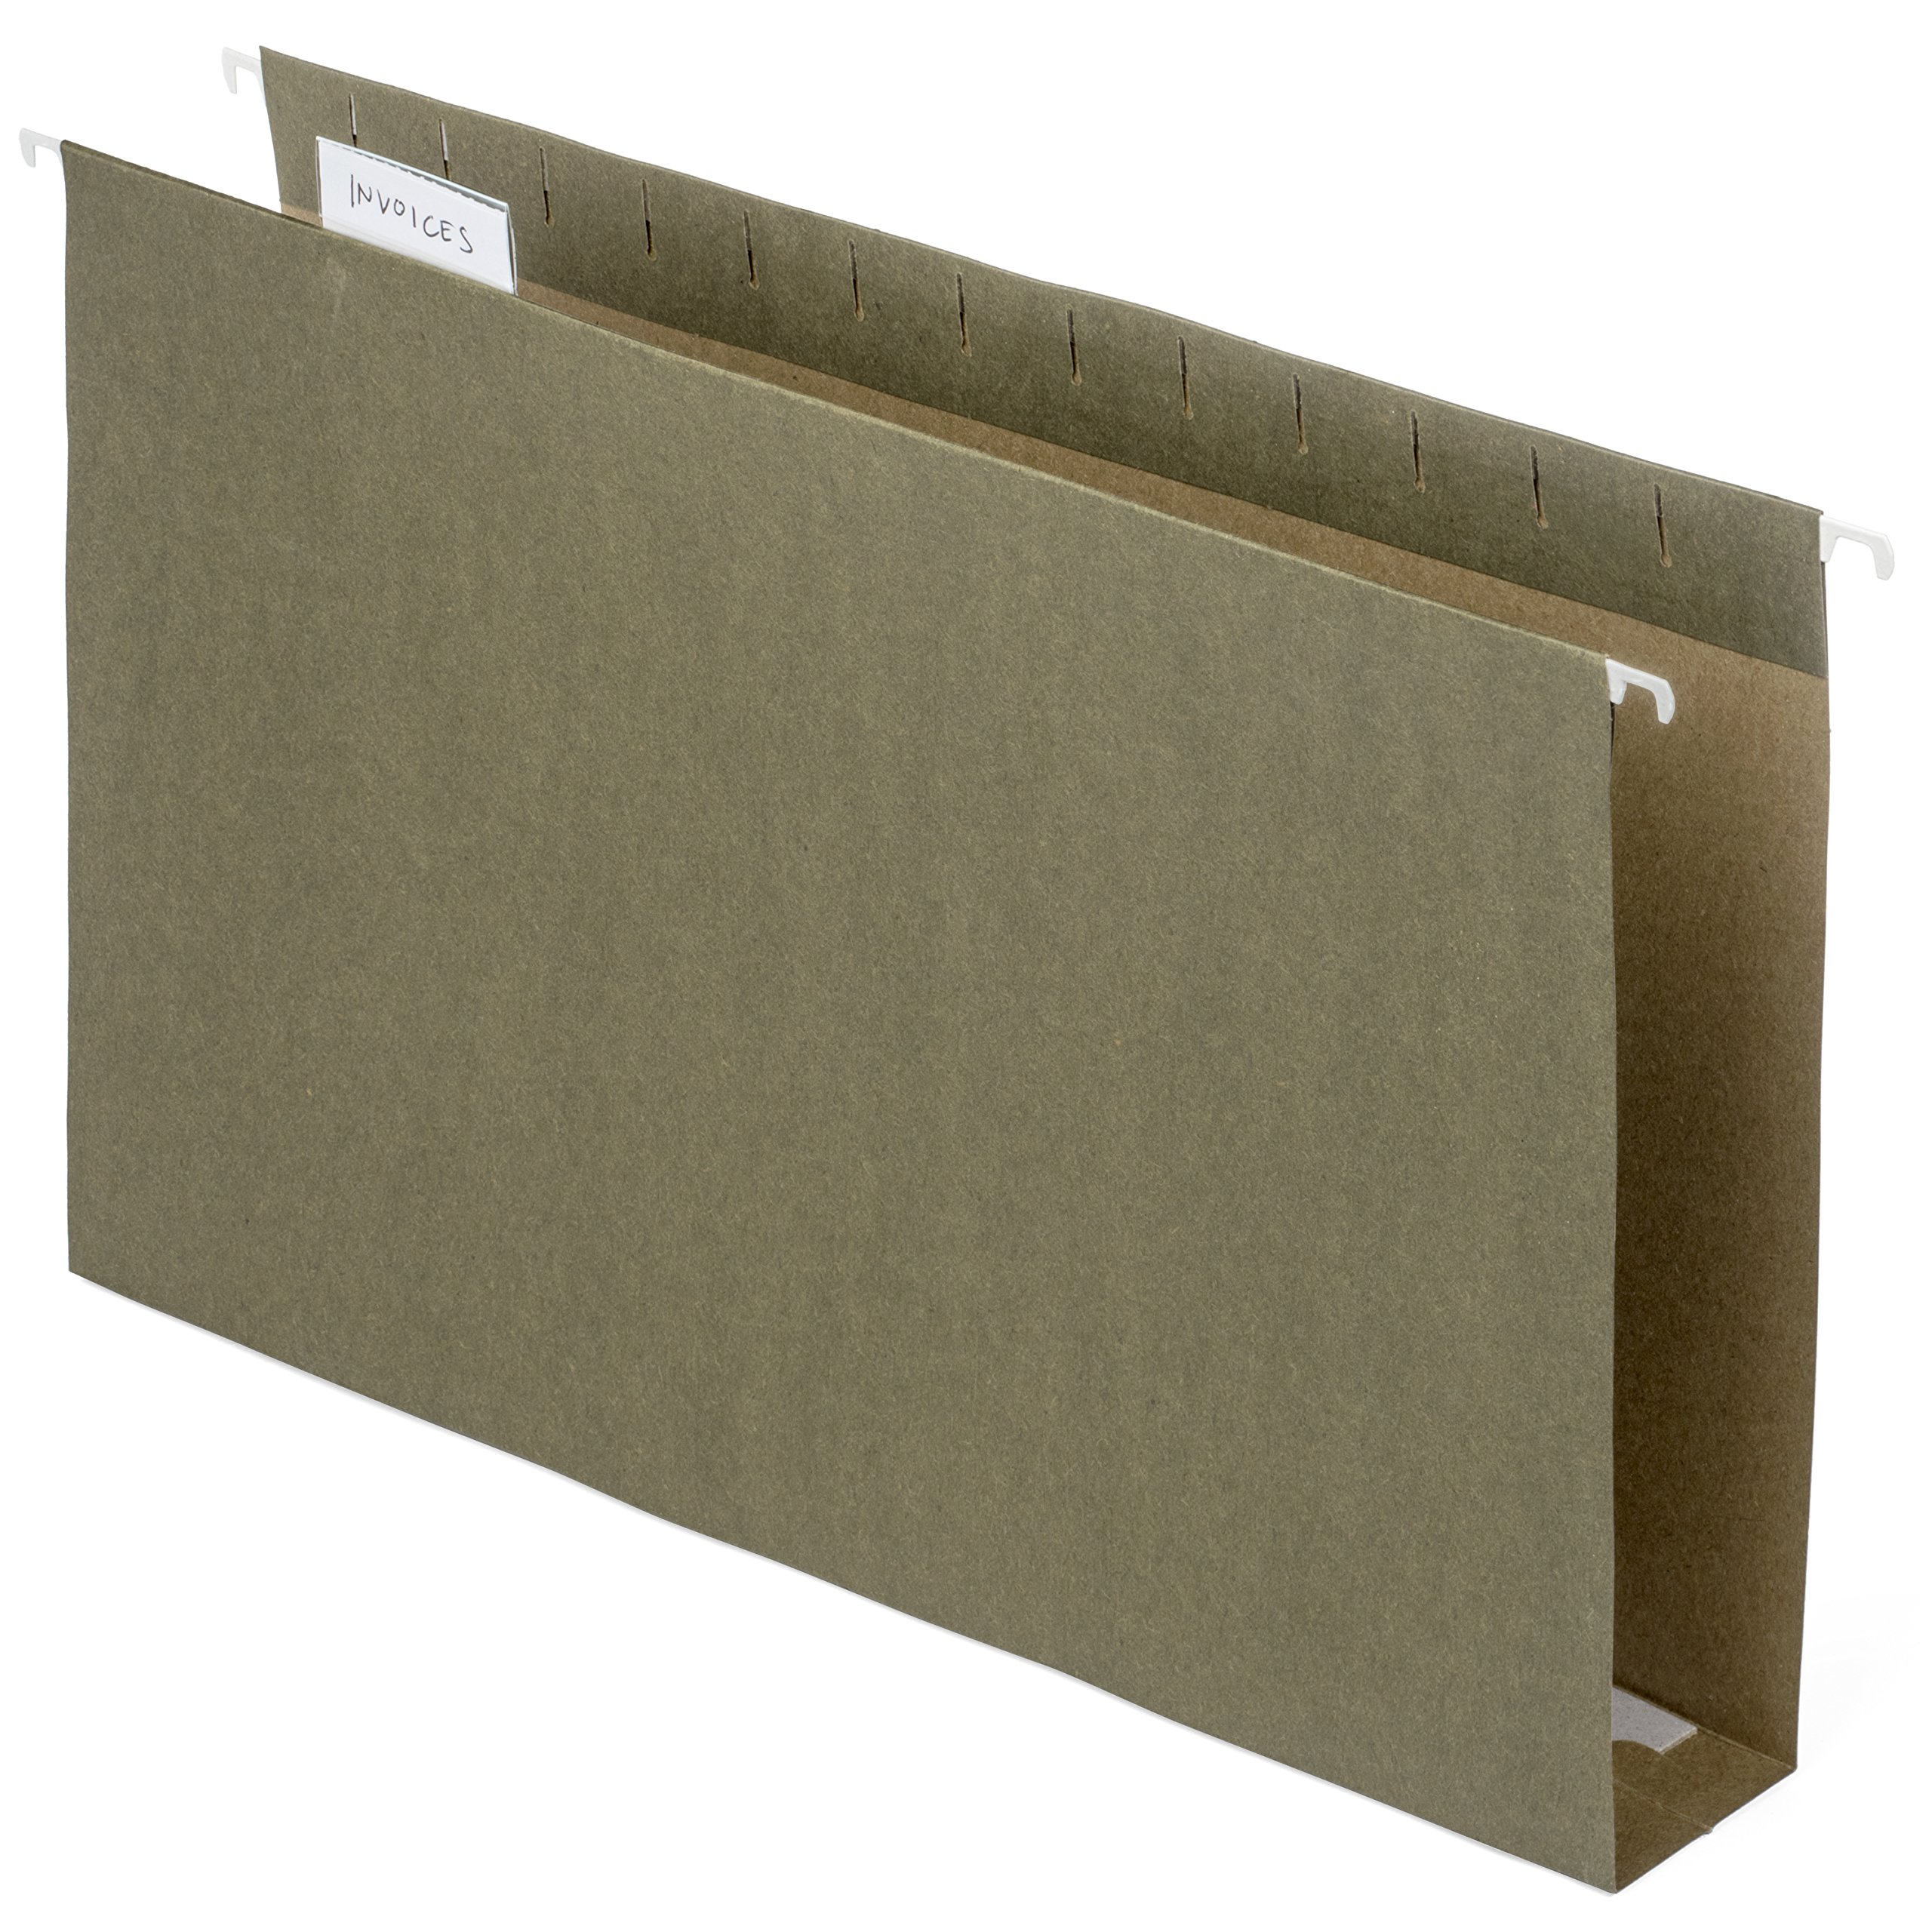 Blue Summit Supplies Extra Capacity Hanging File Folders, Heavy Duty, 2'' Expansion Filing Folders, 1/5 Tab, for Bulky Files, Legal Charts, Manuals, Standard Green, LEGAL Size, 25 Pack